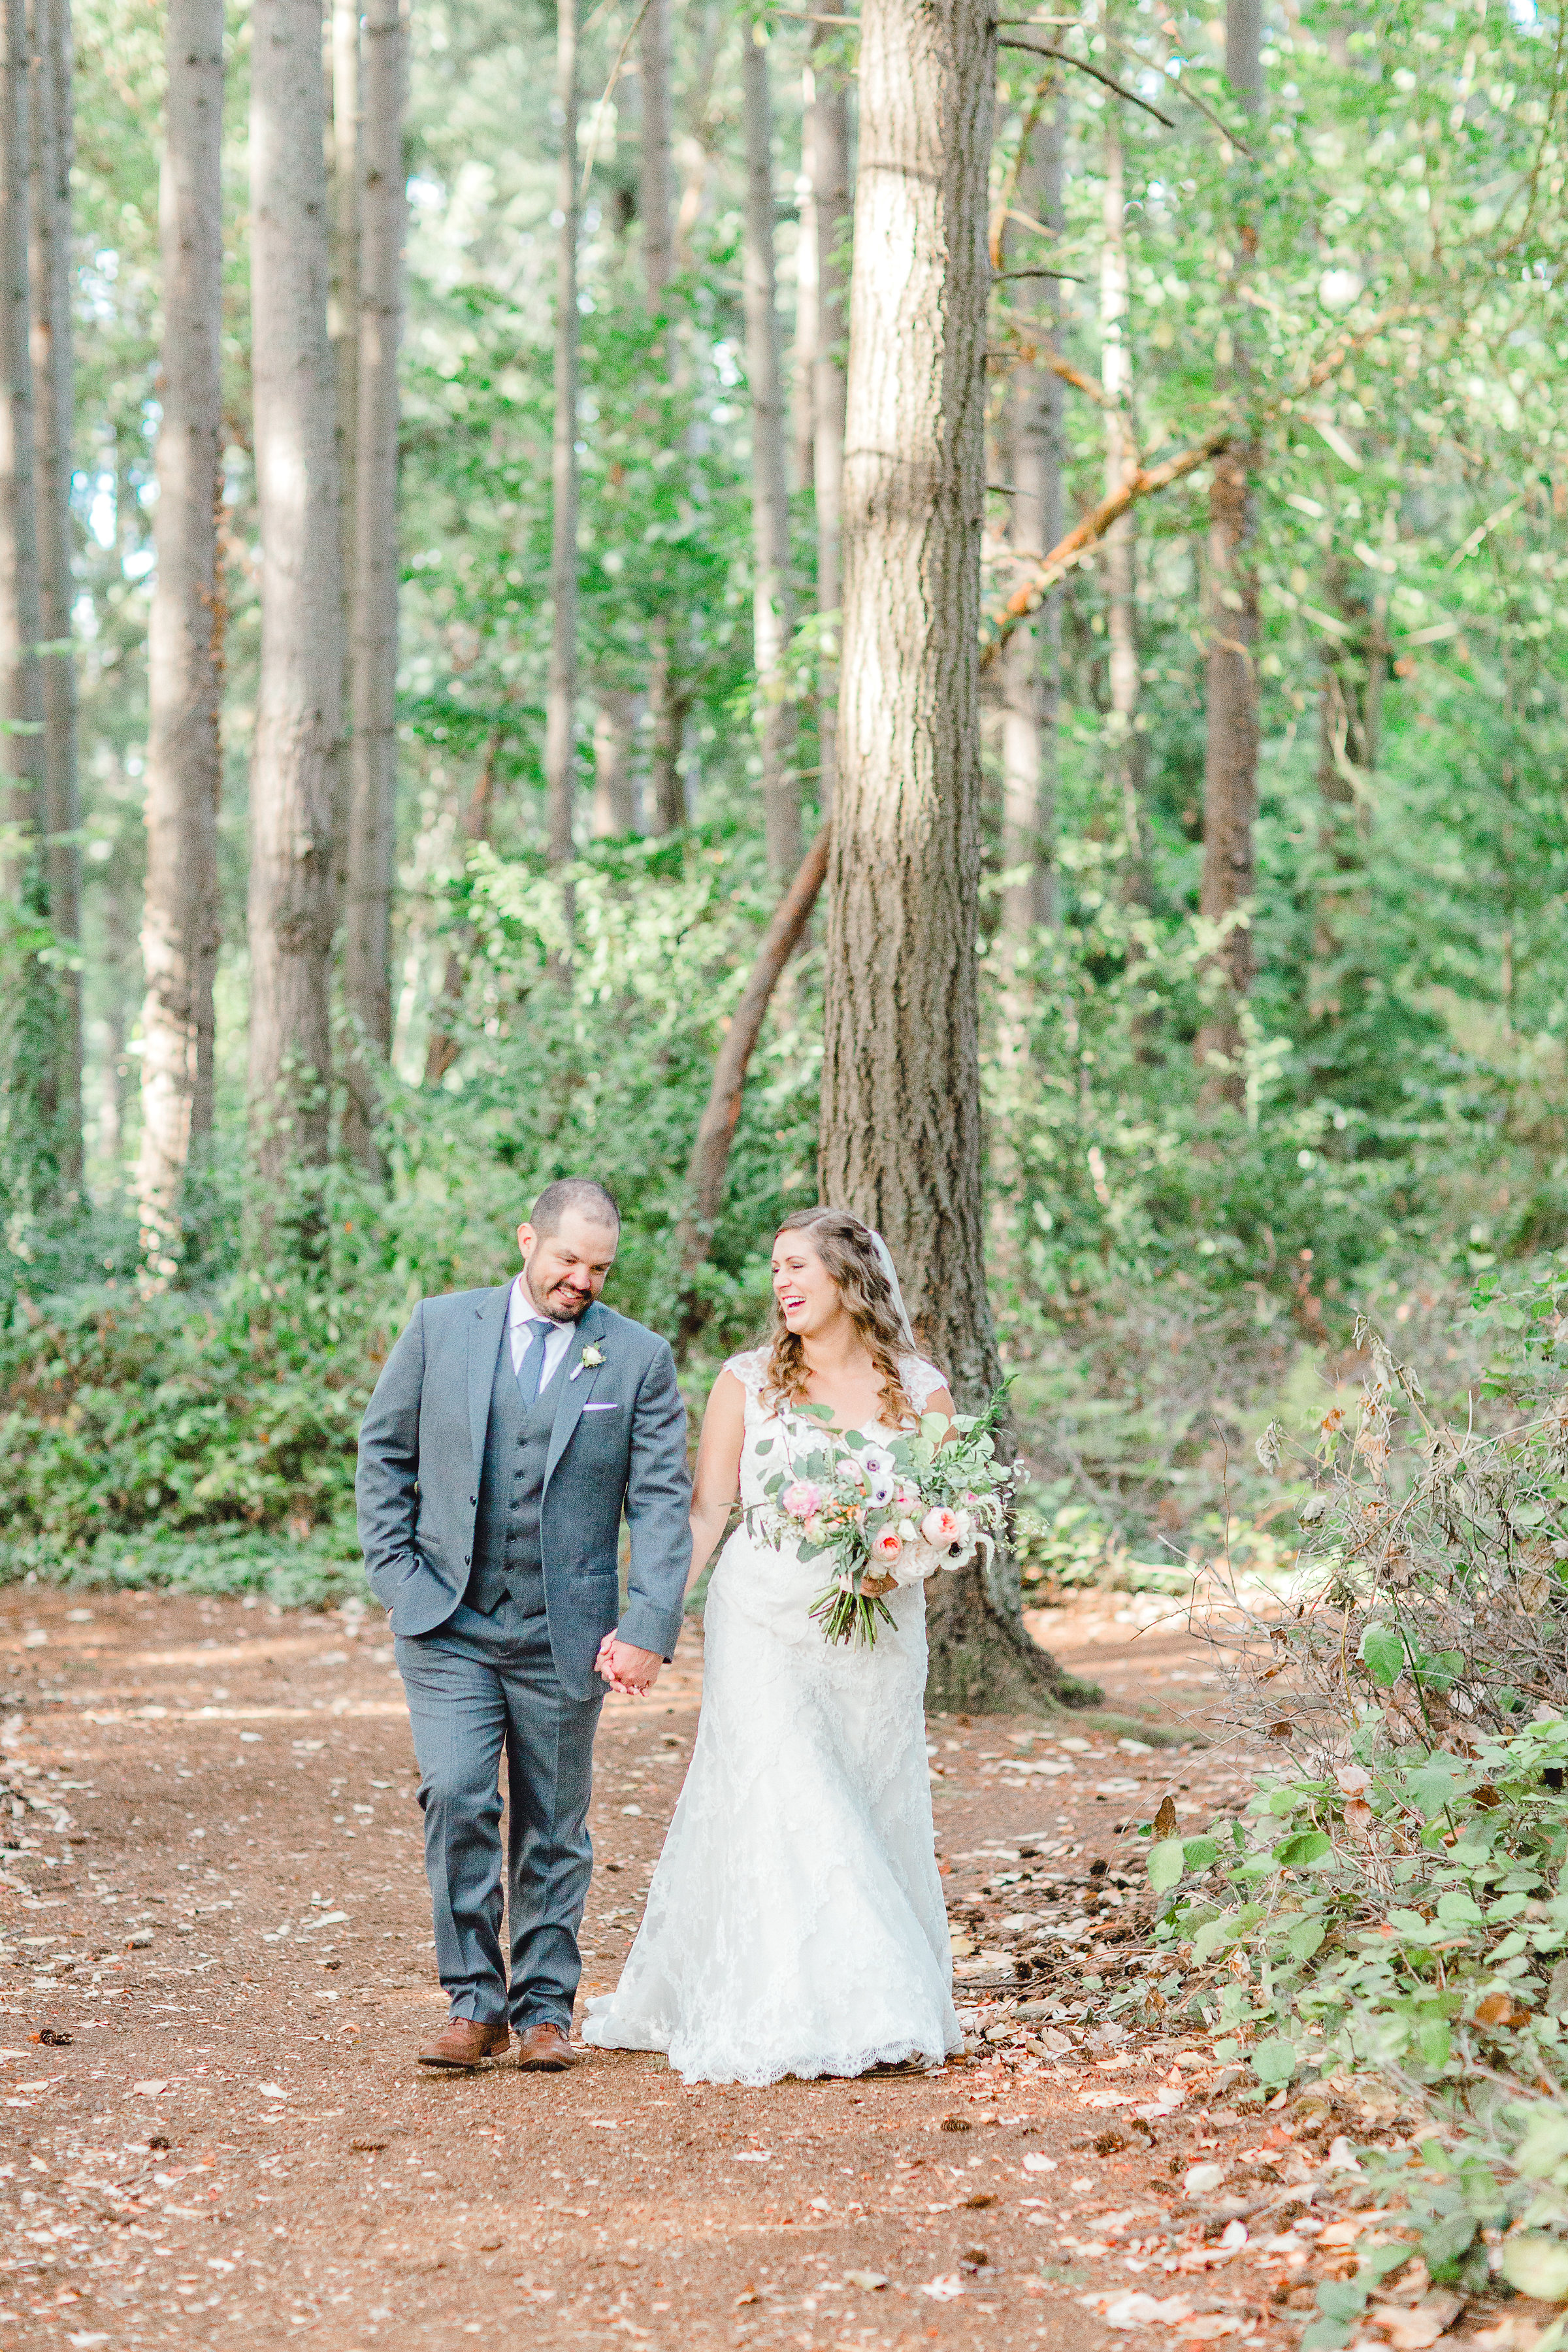 Seattle wedding, Washington wedding, bride and groom, PNW wedding, wedding inspiration, wedding flowers, Seattle bride, outdoor wedding, garden wedding, bridal photos, wedding photography, bridals, bridal shoot